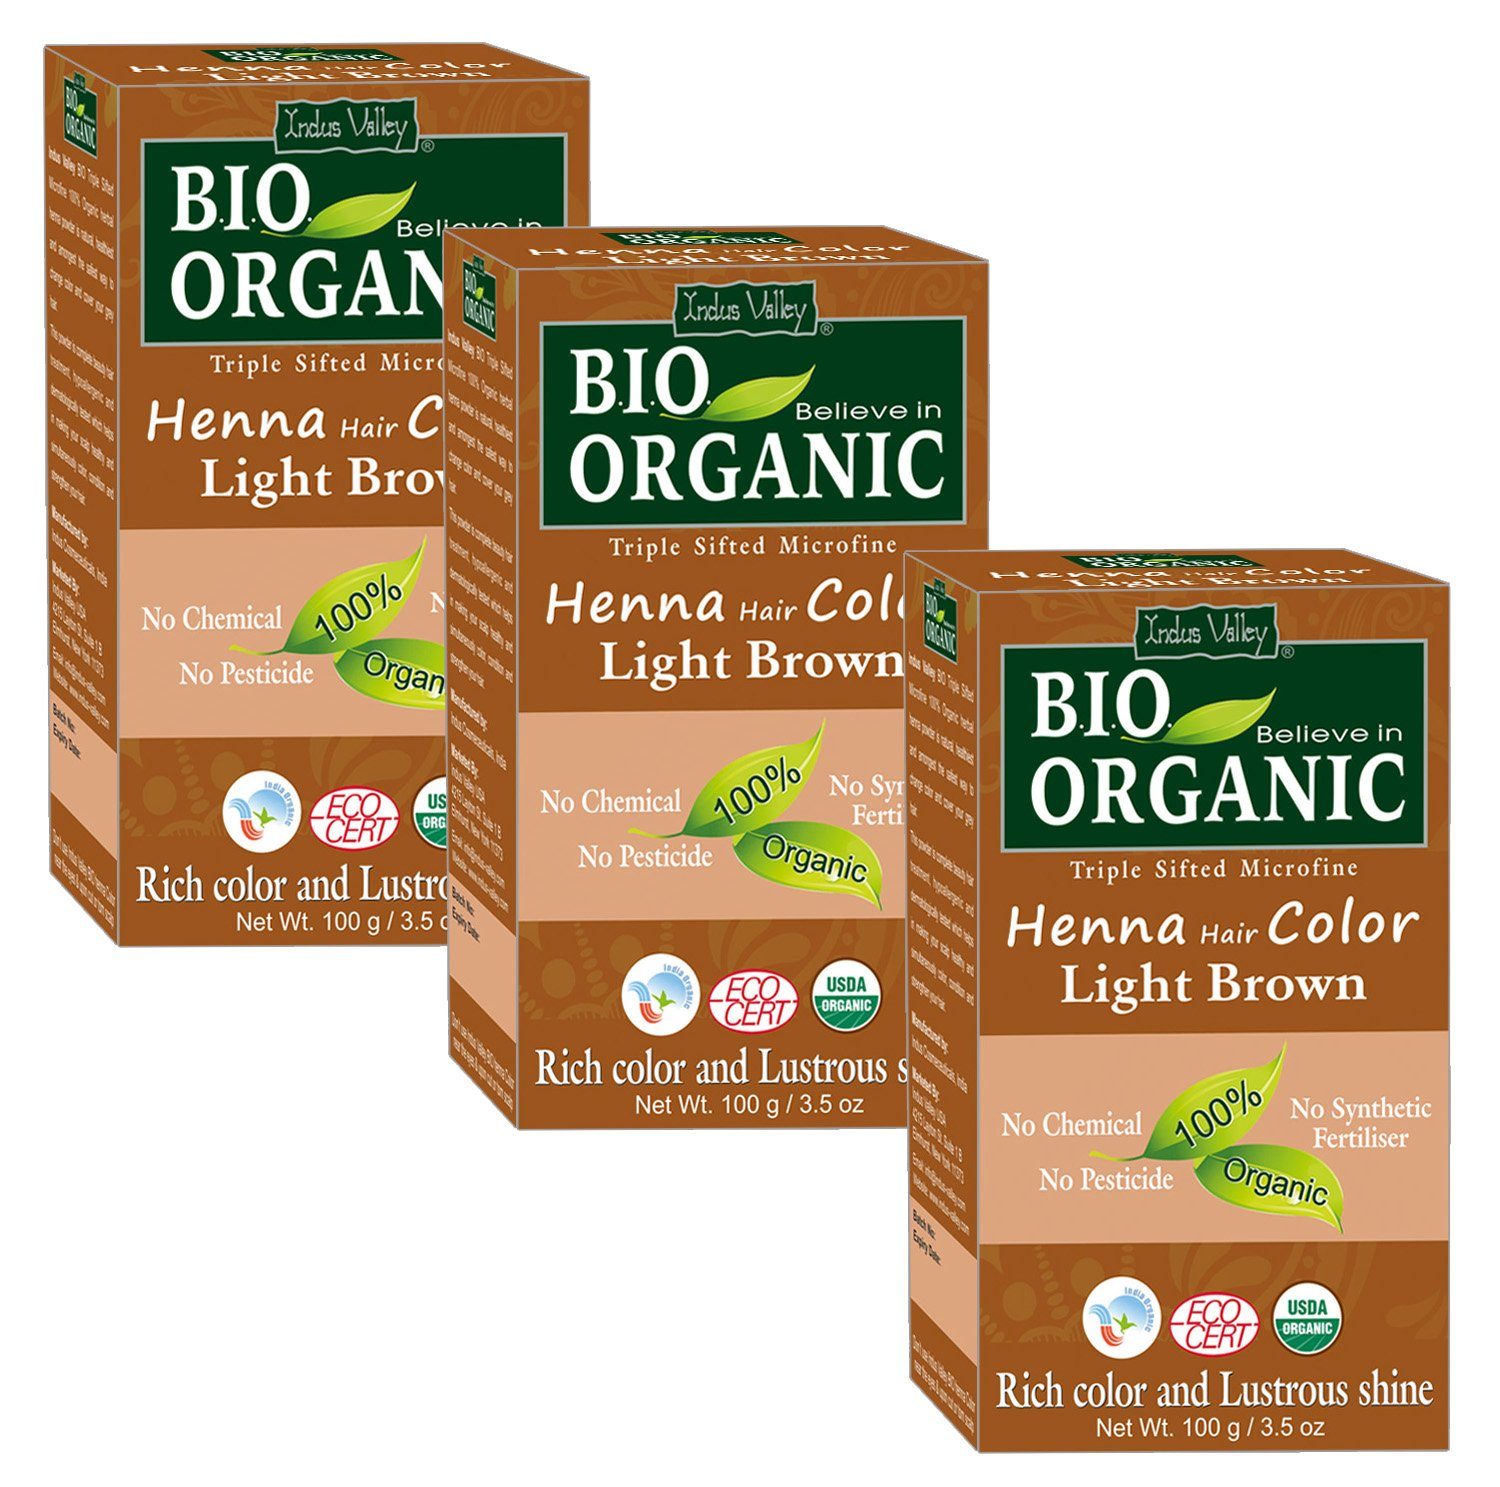 Indus Valley Bio Organic Henna Hair Dye Colour For Grey Hair(Colourless)- Set of 3 (300 gm) Microfine Triple Shifted Henna With No Chemical, No Synthetic Fertiliser, No Pesticide Indus Cosmeceuticals